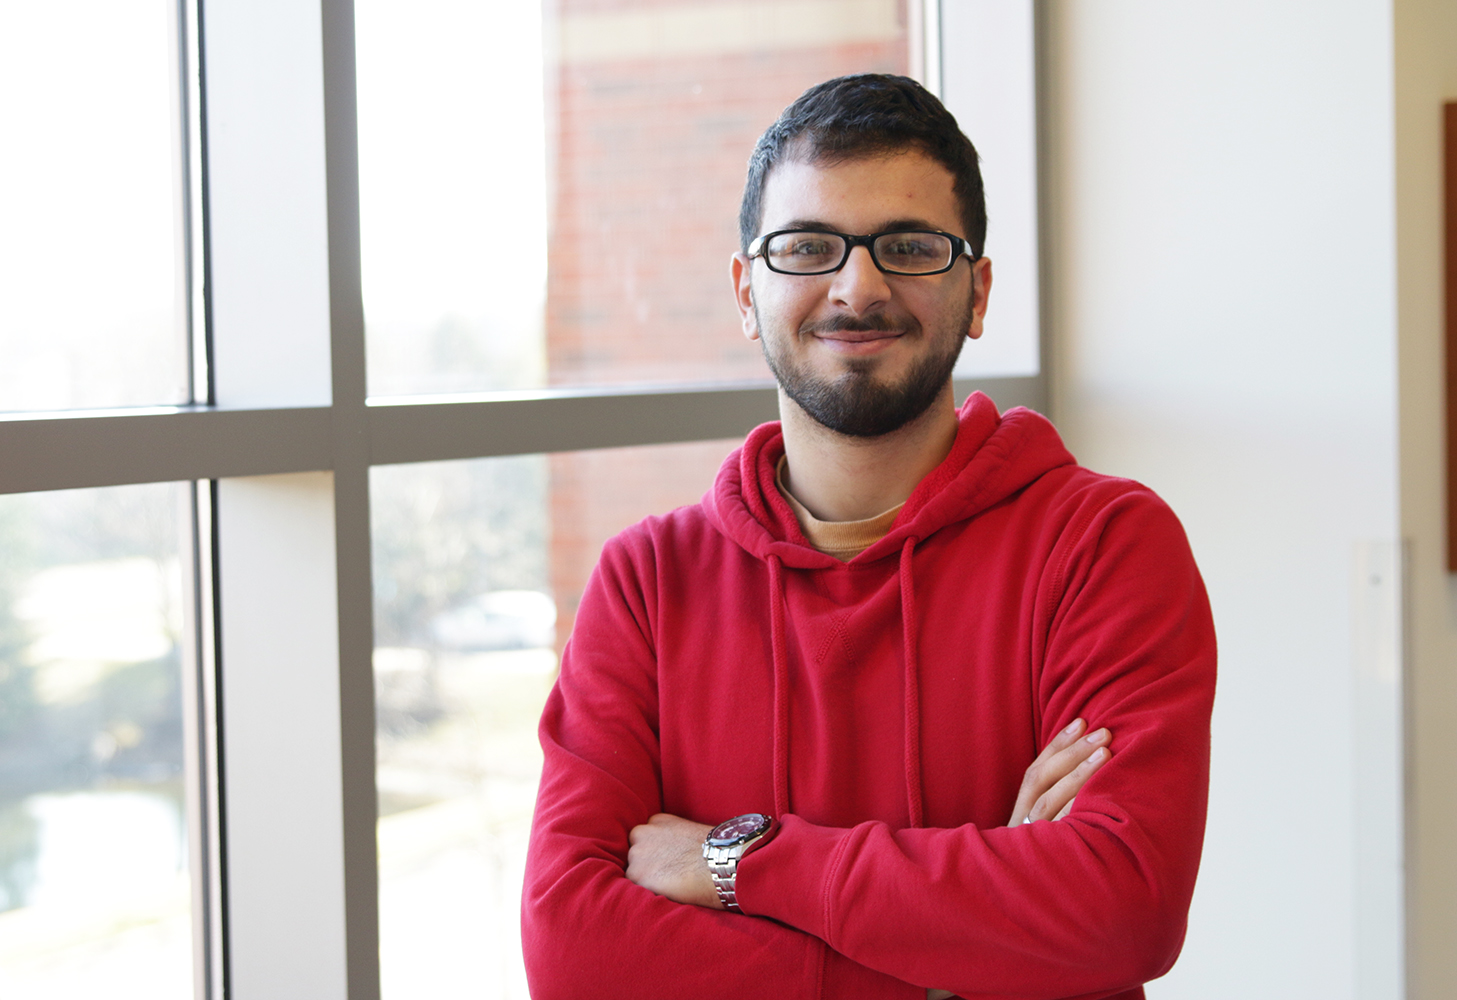 A St. Benedict Scholarship and Phi Theta Kappa Award made it possible for Burr Ridge resident and COD transfer student Sami Tashwali to attend Benedictine University.